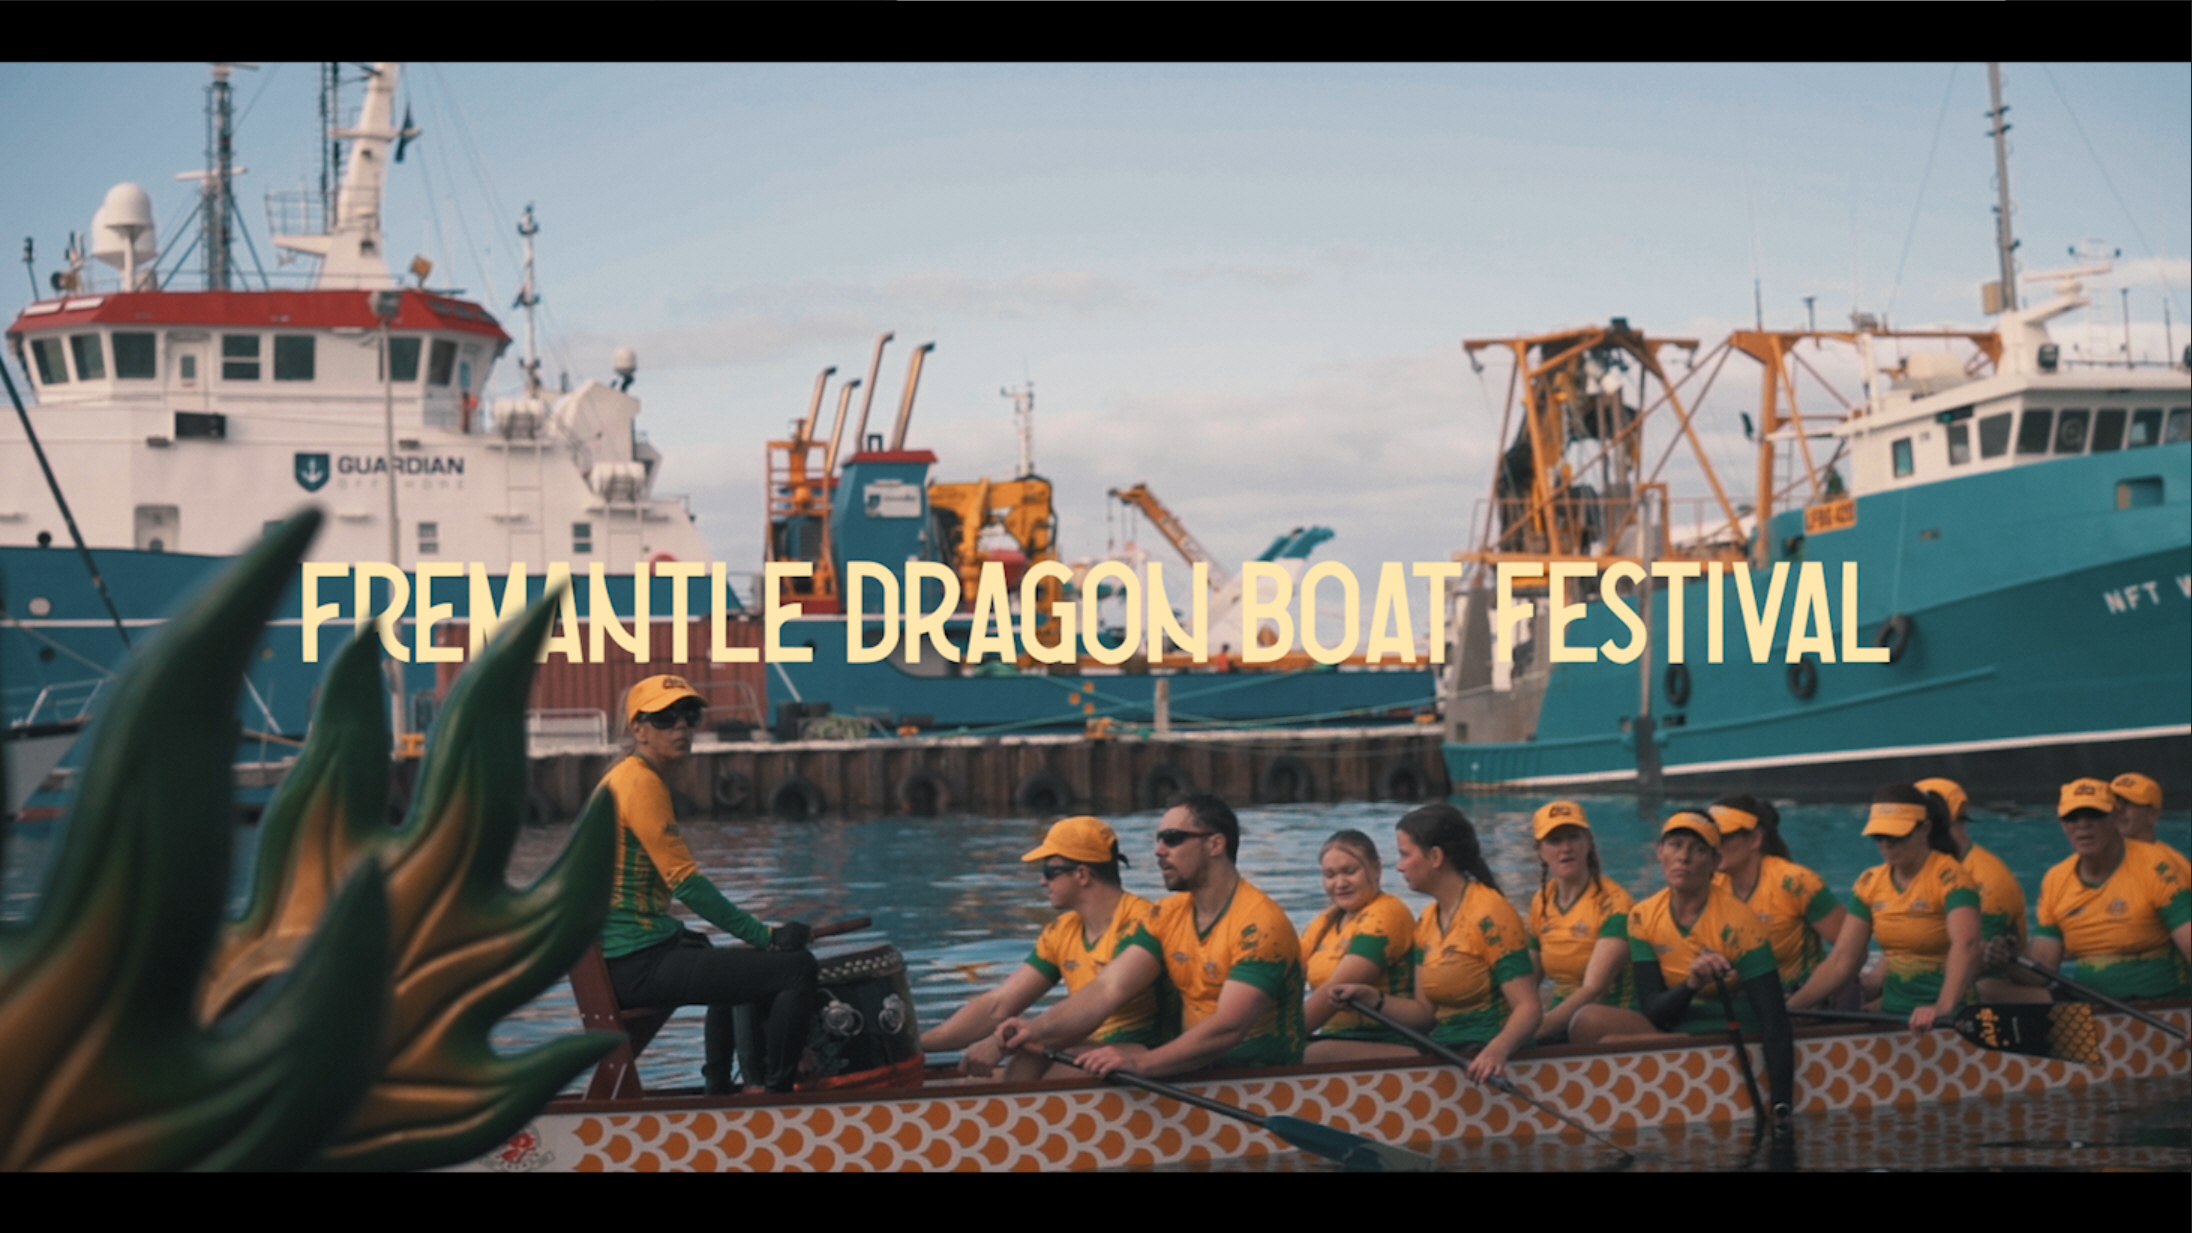 Fremantle Dragon Boat Festival 2019 - The first annual Fremantle Dragon Boat Festival, set in Western Australia's iconic Fremantle Boat Harbour.International level paddlers, cultural performances and Dragon Boating's rich history, the event was a true spectacle.